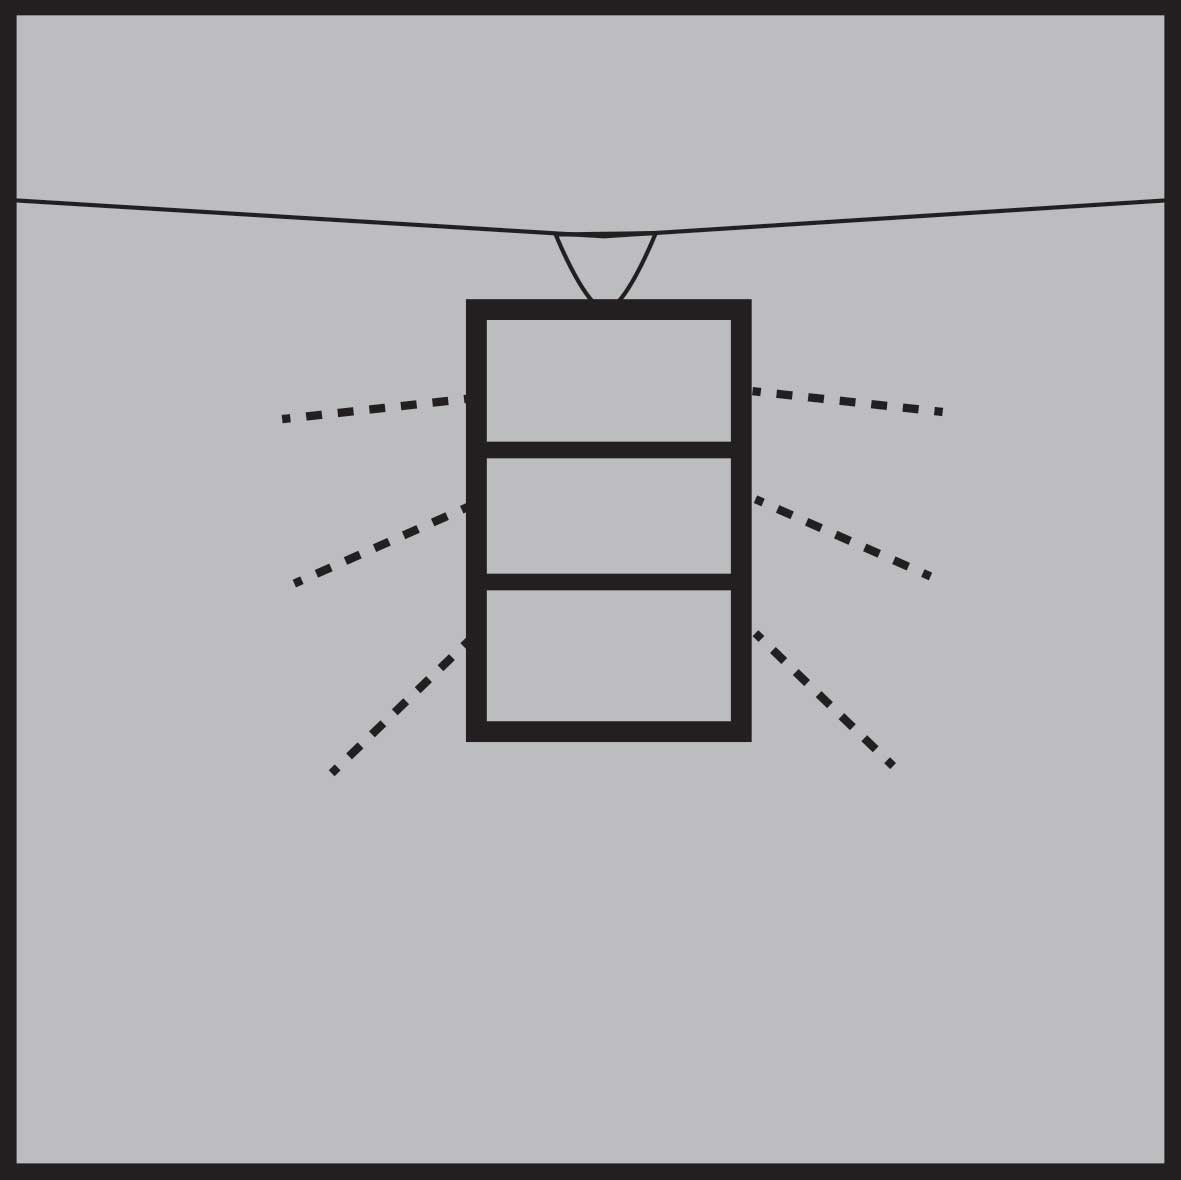 Catenary light fittings